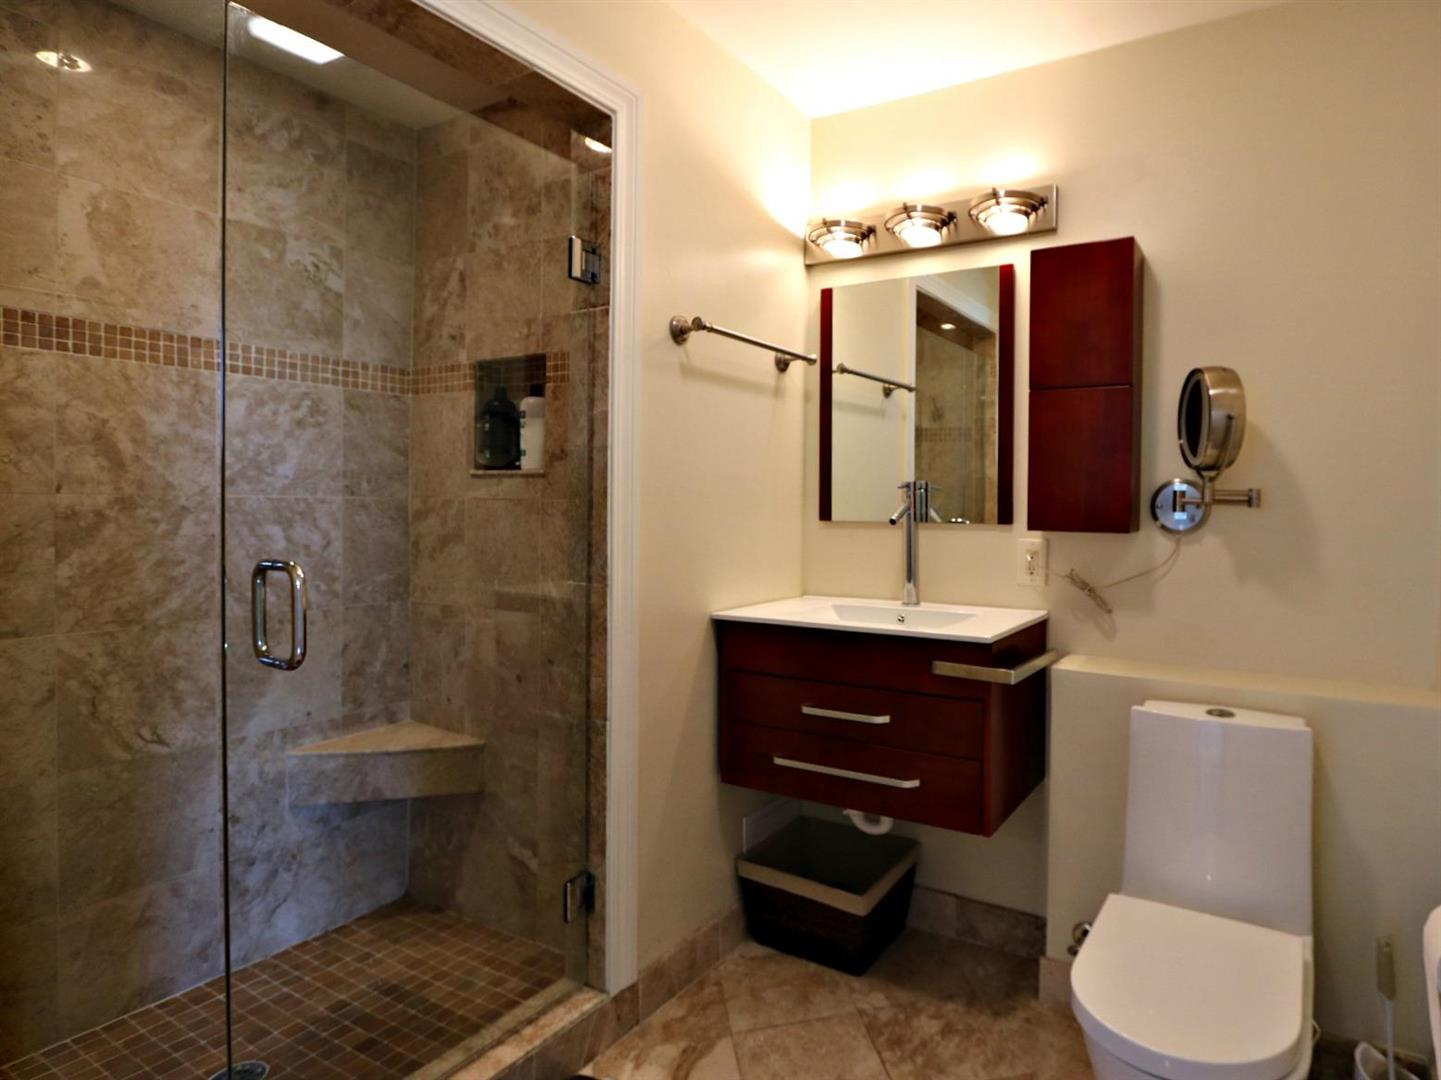 1224St.CharesAvenue,Bathroom.jpg